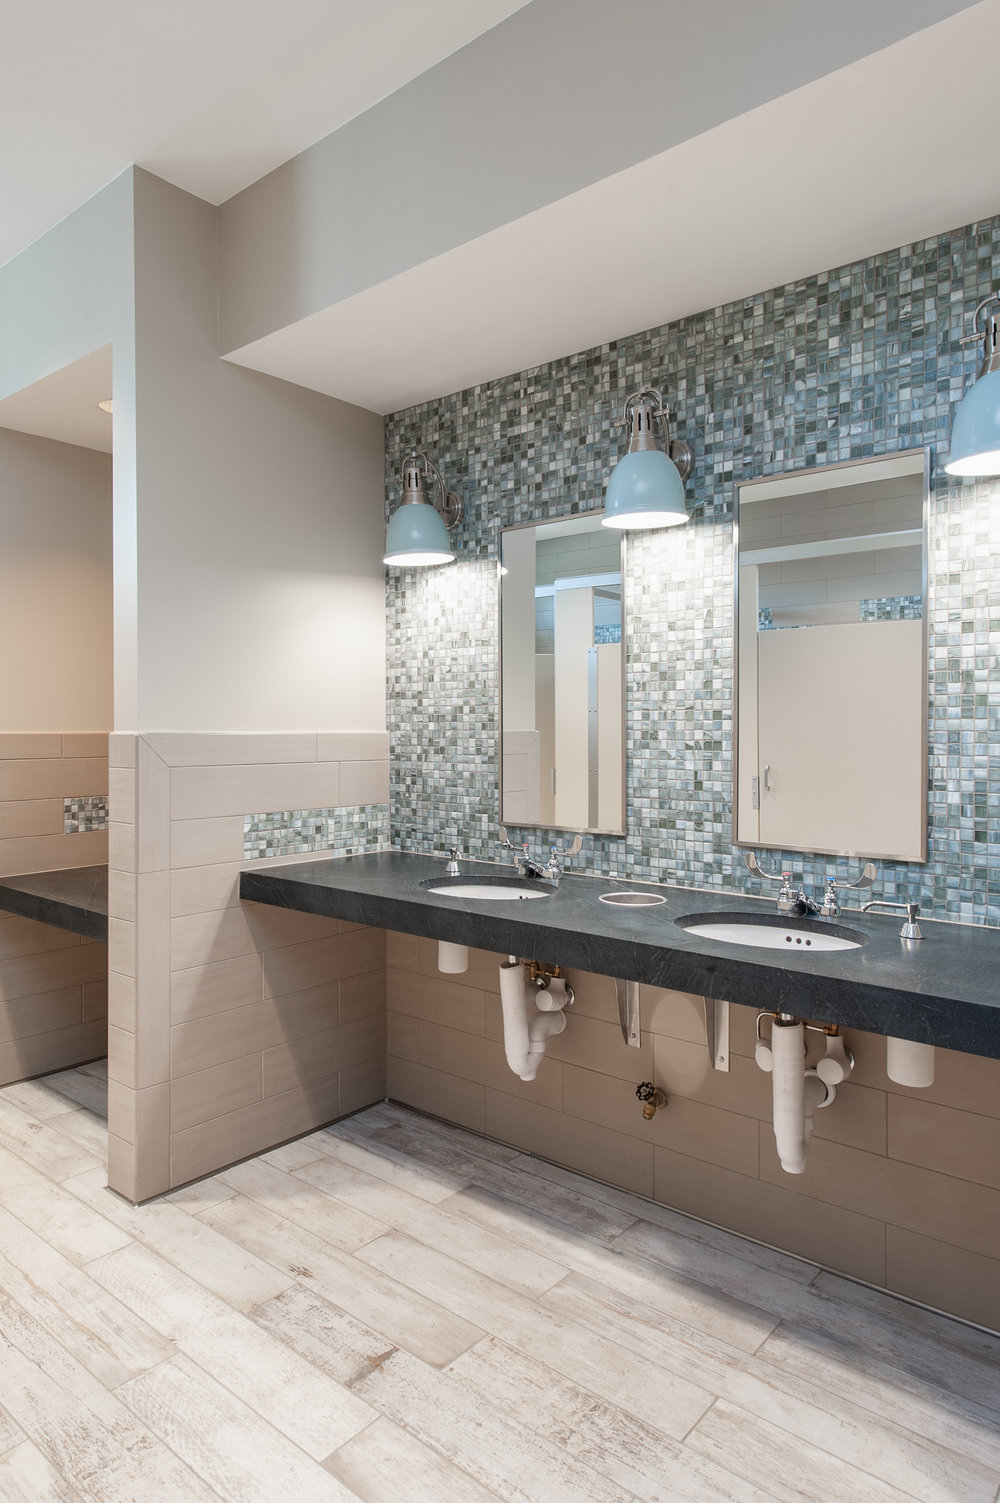 Micamy Design Studio_Interior Design_Beacon Lake_Amenity Center_Clubhouse_New England Style_Nautical_Glass_Mosaic_Tile_Sconce Restroom_Soapstone_Lantern_Wallpaper_Blue_.jpg